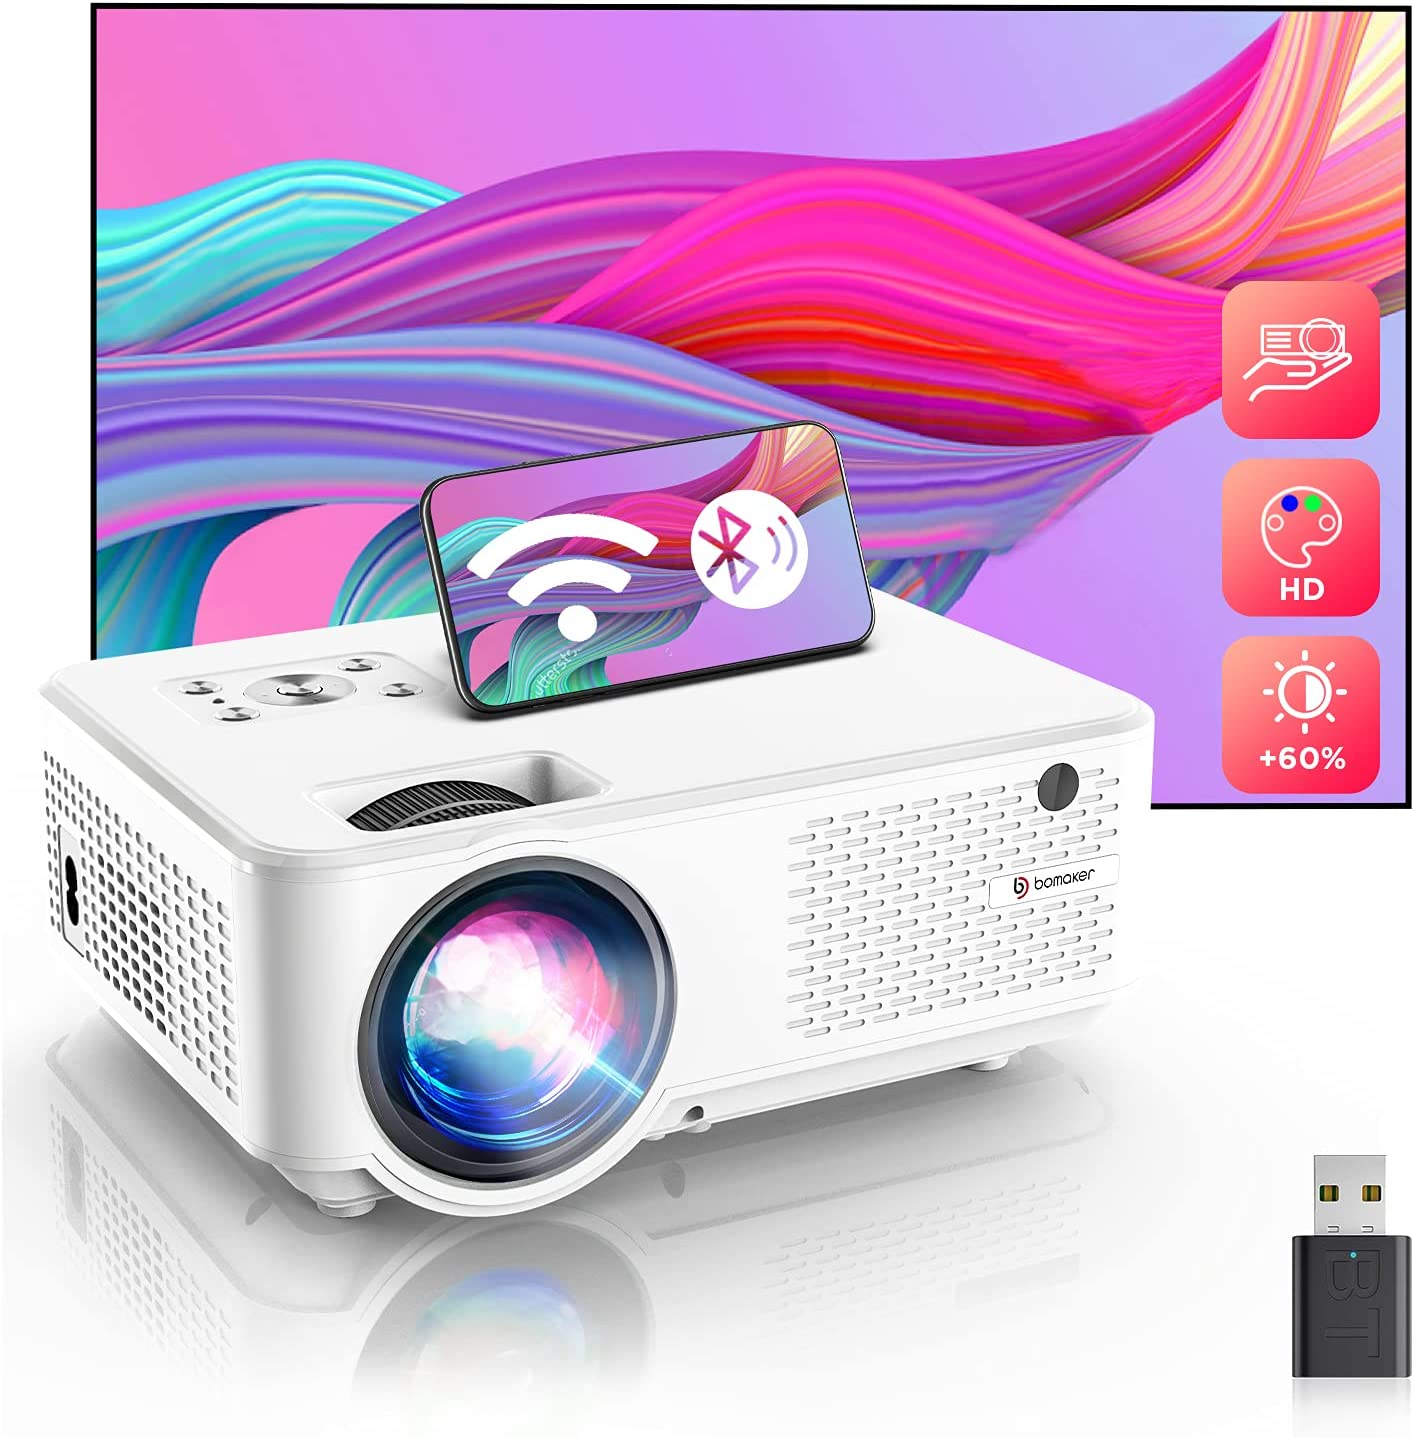 Bomaker WiFi Mini Projector, Full HD 1080p Outdoor TV Projector & 200'' Display Supported, Portable Bluetooth Projector Compatible with iPhone, Tablet, TV Stick, PS4, DVD, Android, Windows, PPT